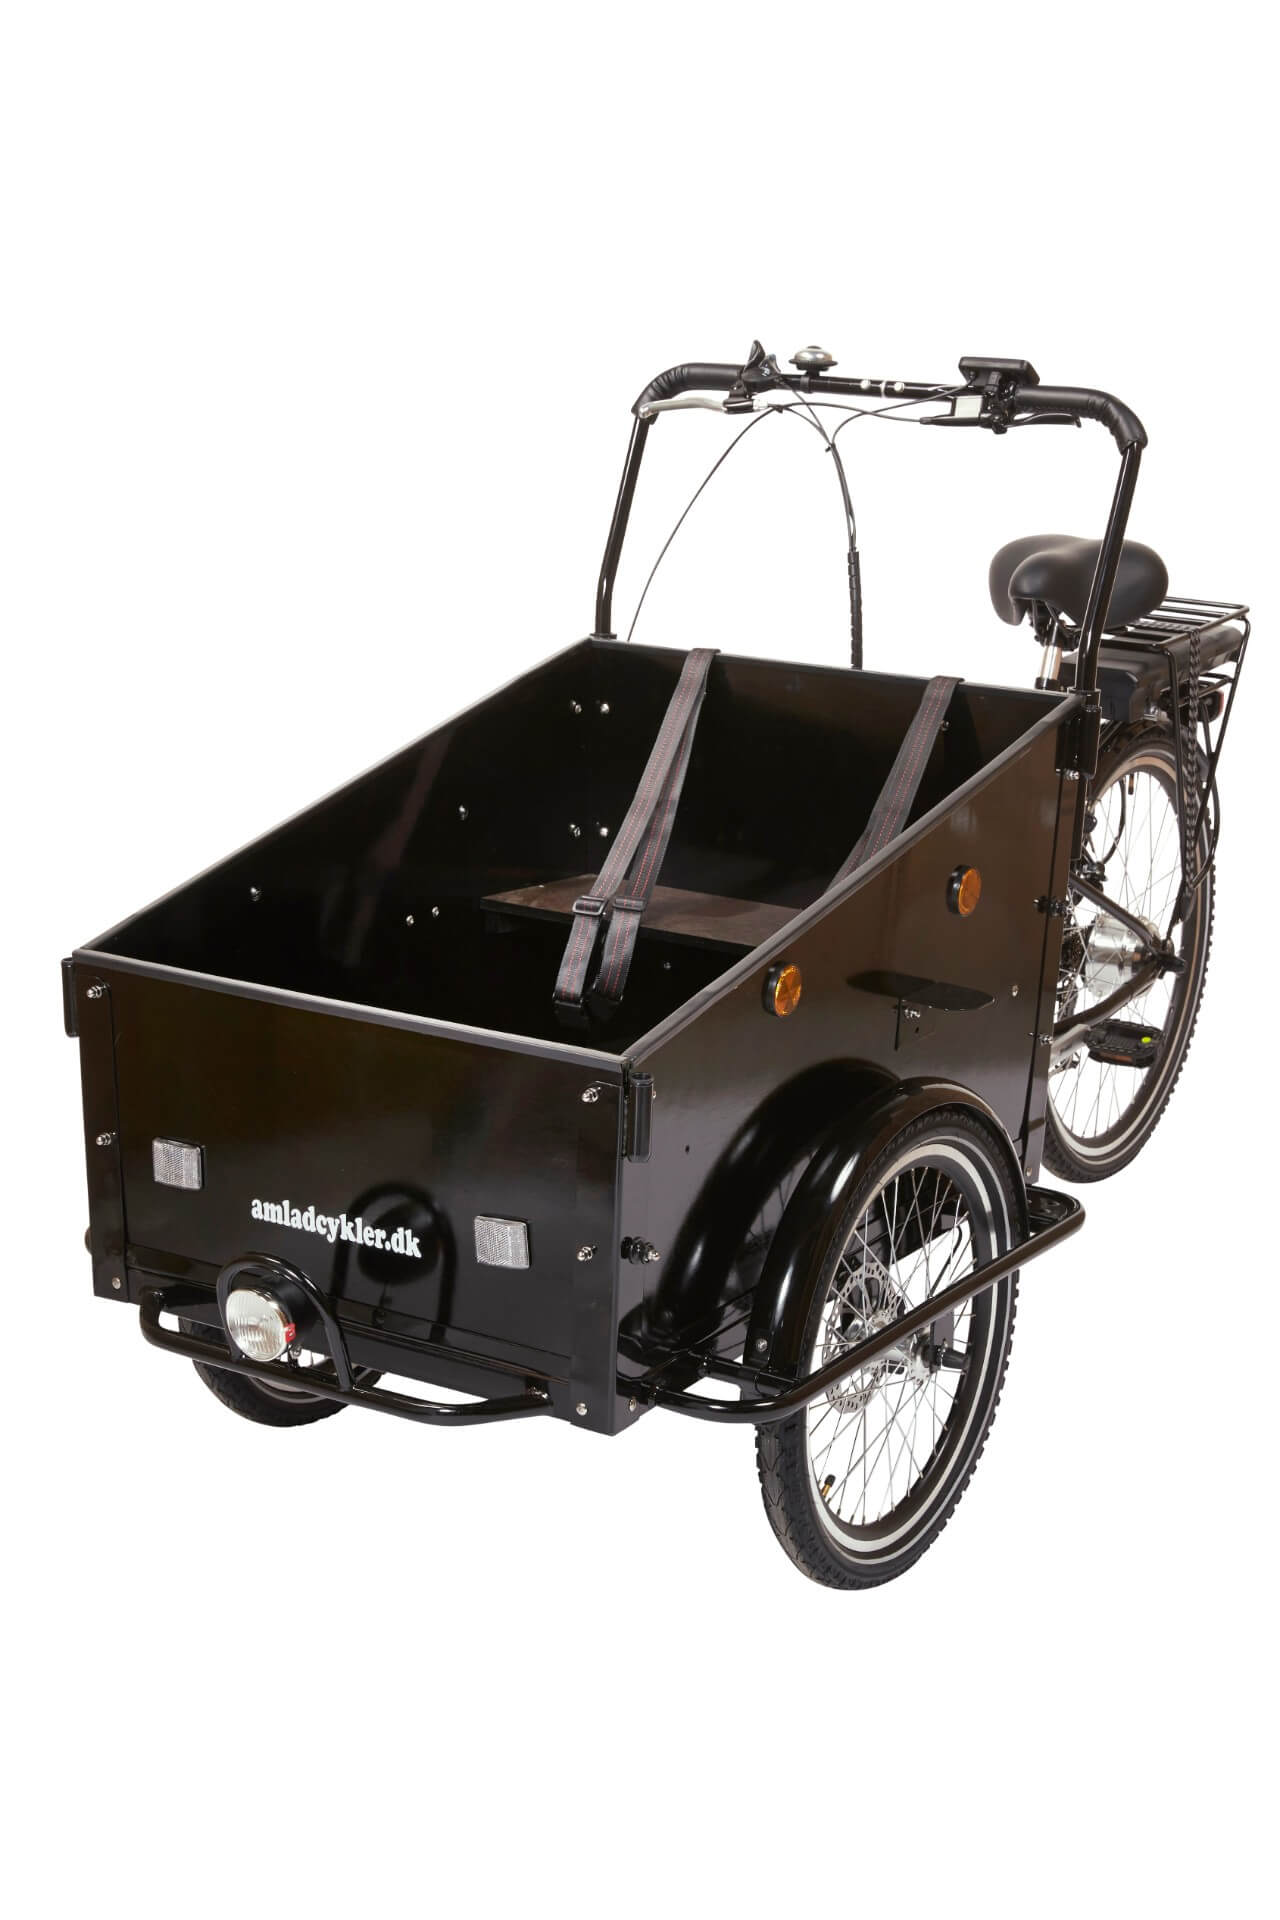 Cargo bike lowerrider